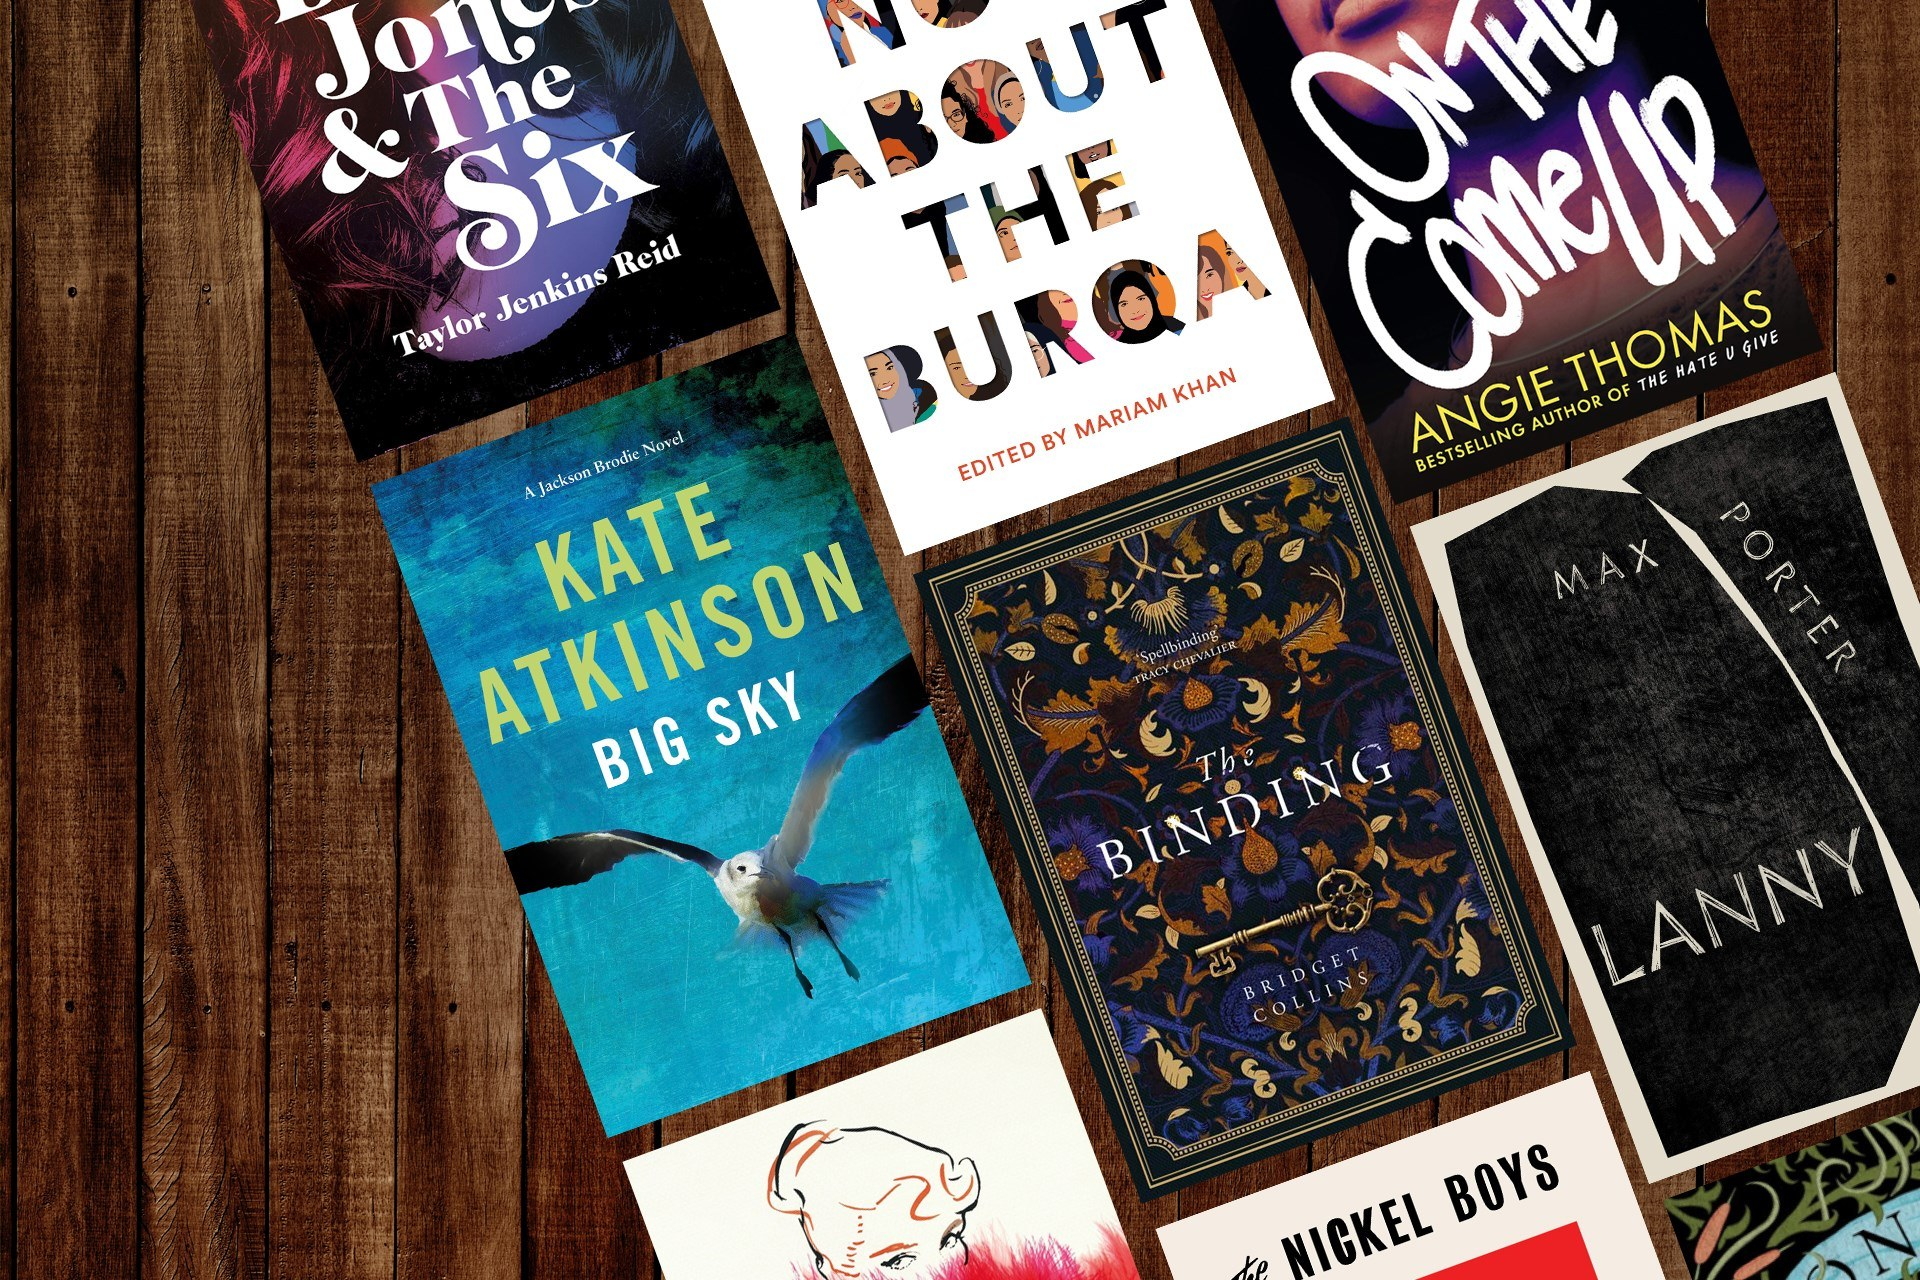 We've picked the most highly-anticipated books of the year.